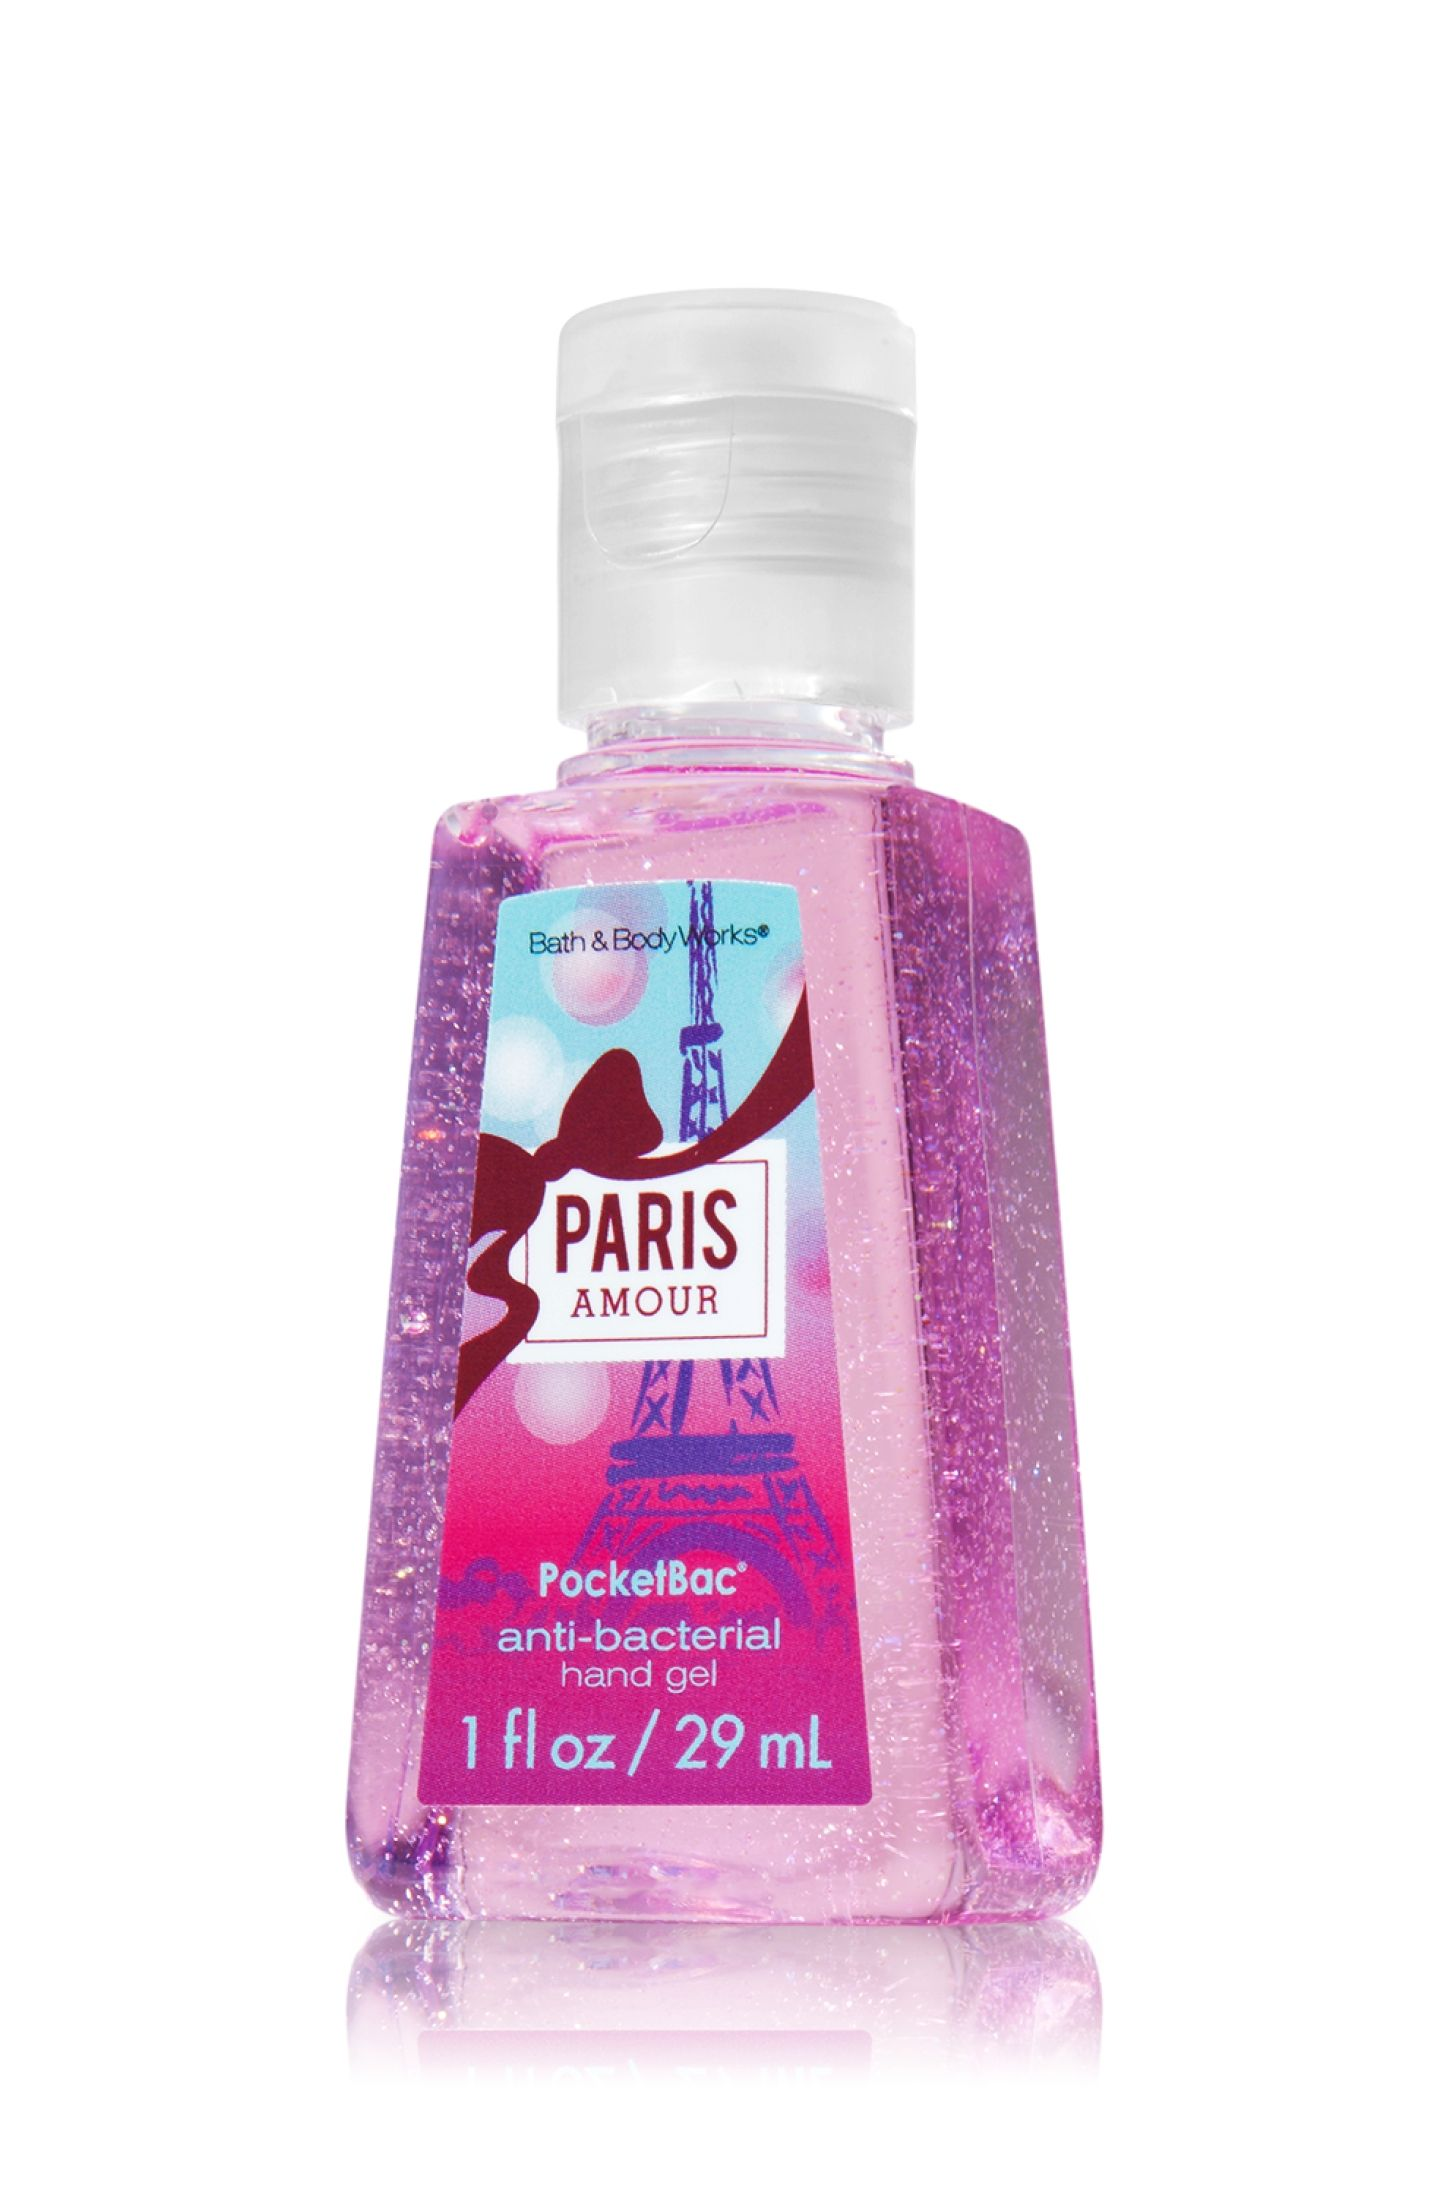 Paris Amour Pocketbac Sanitizing Hand Gel Anti Bacterial Bath